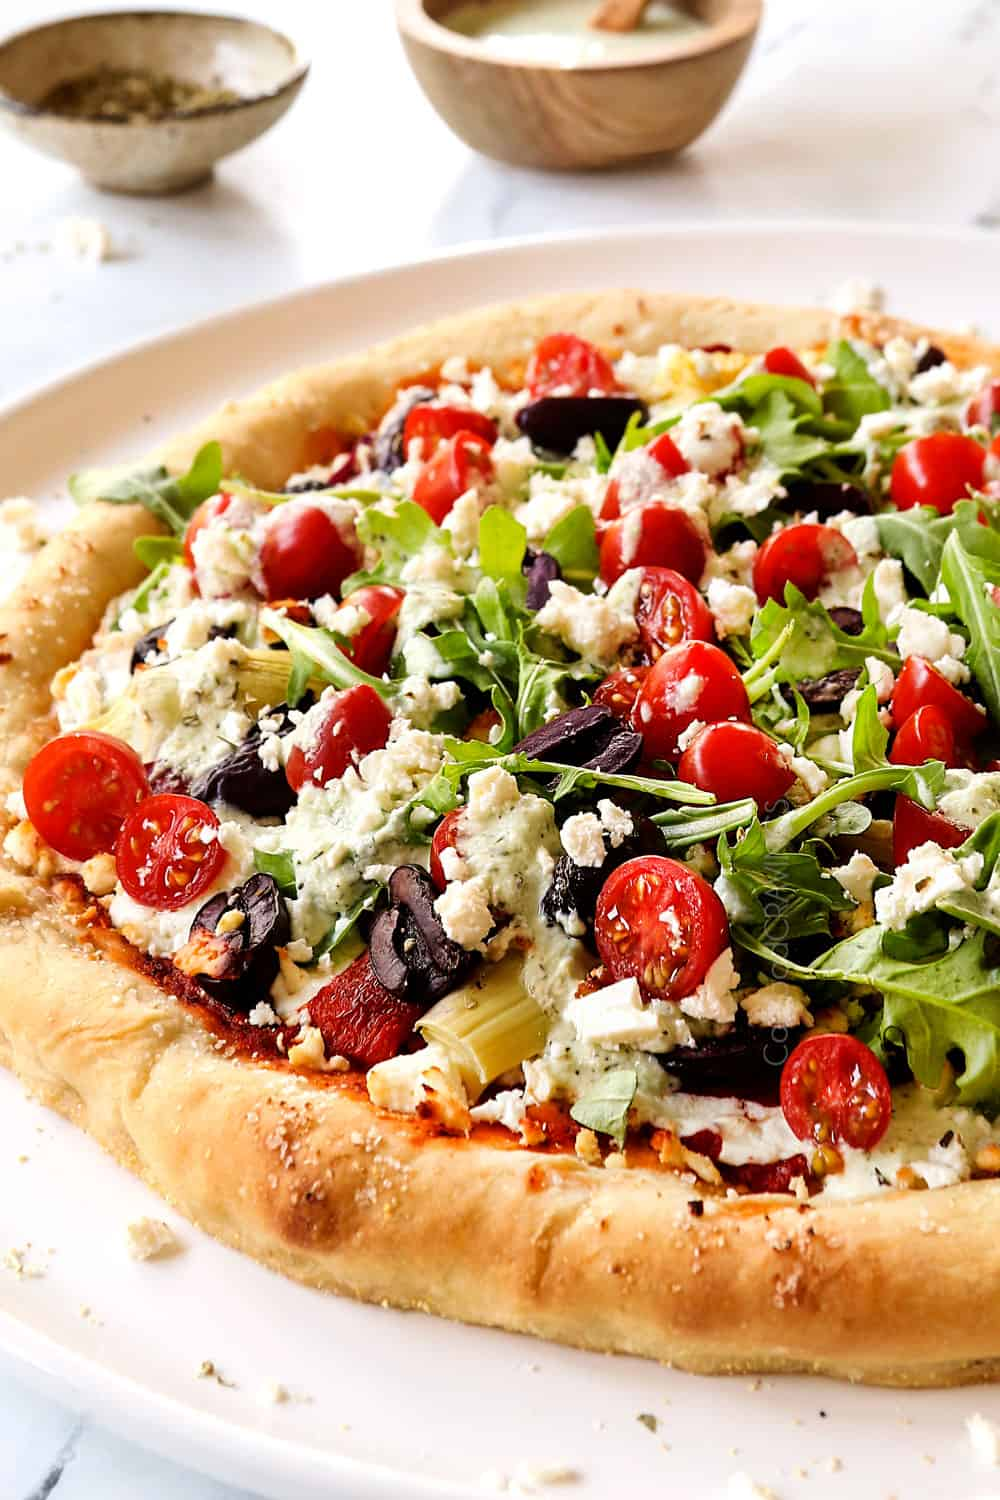 up close of Greek pizza showing how soft and chewy the crust is